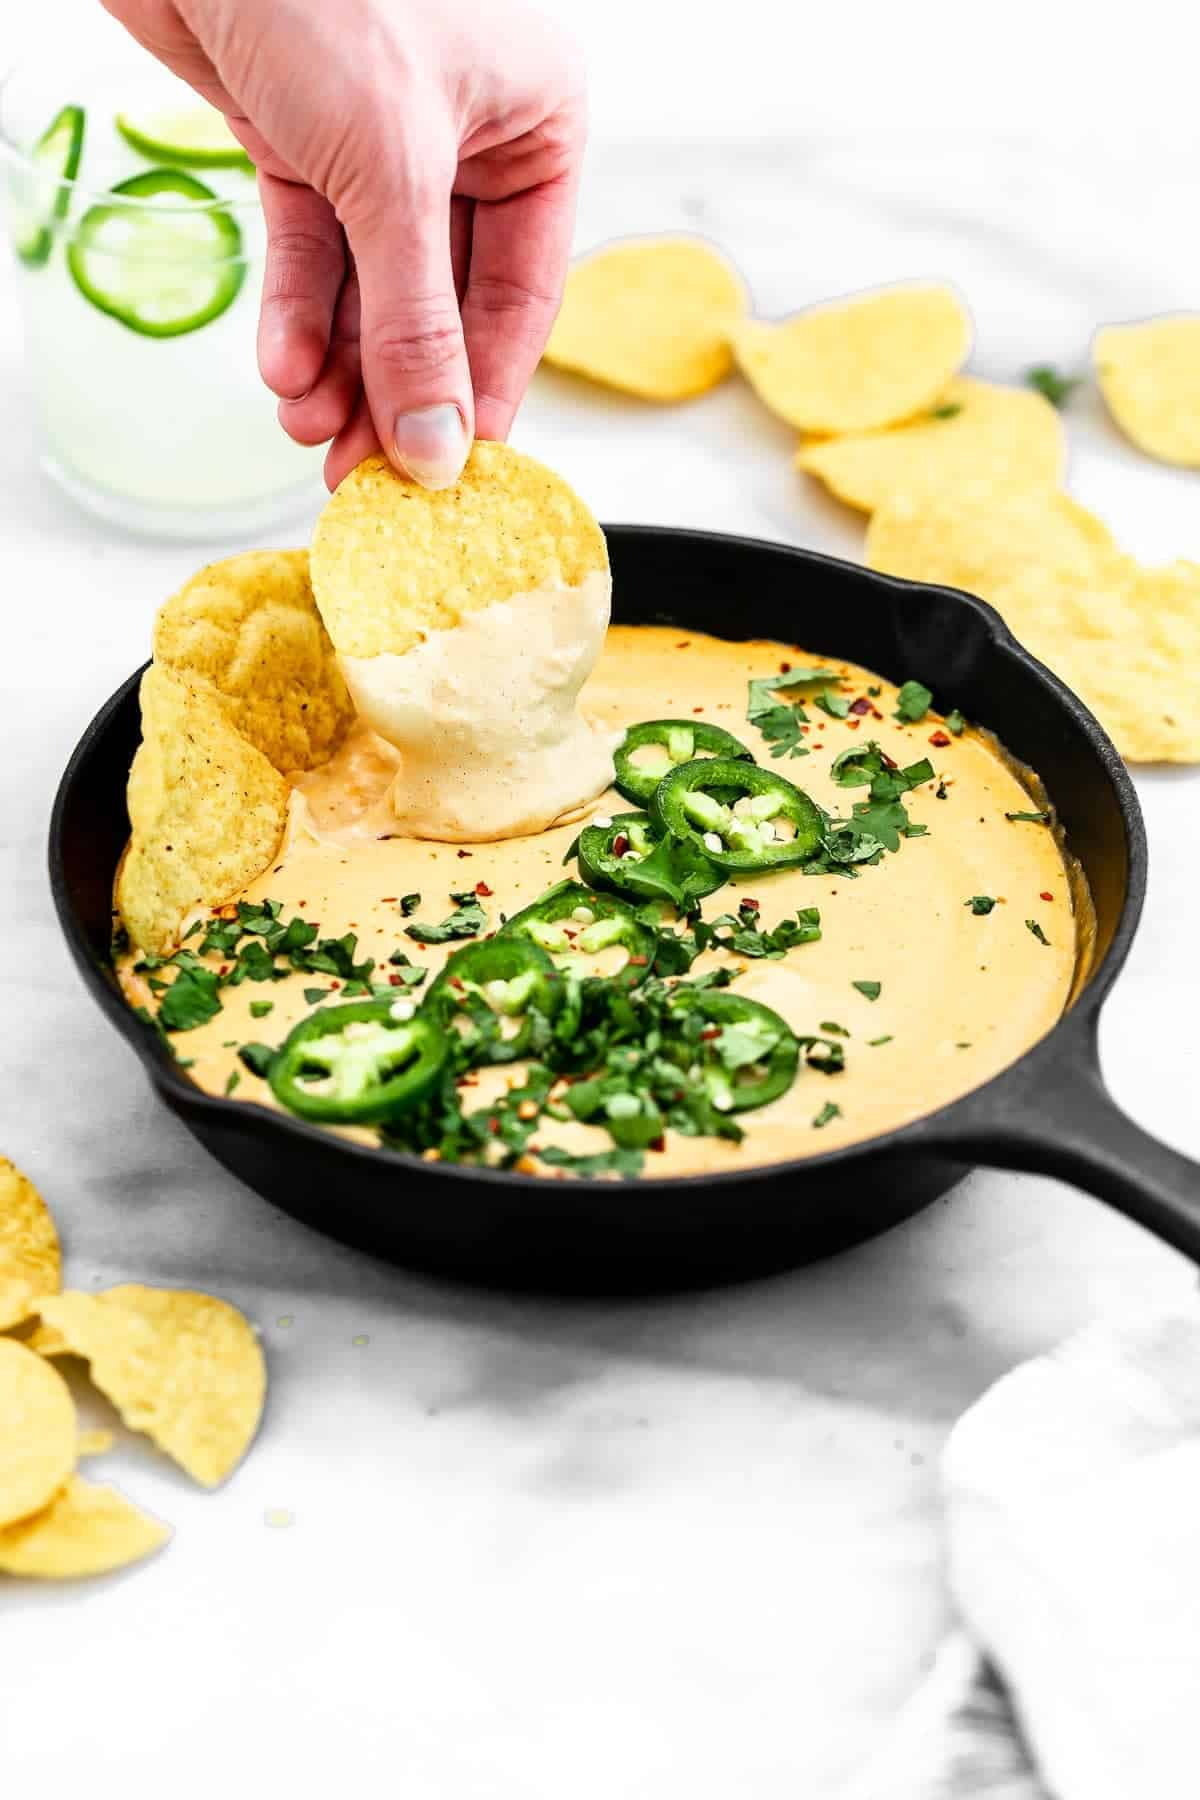 Dipping in a chip in the vegan queso.